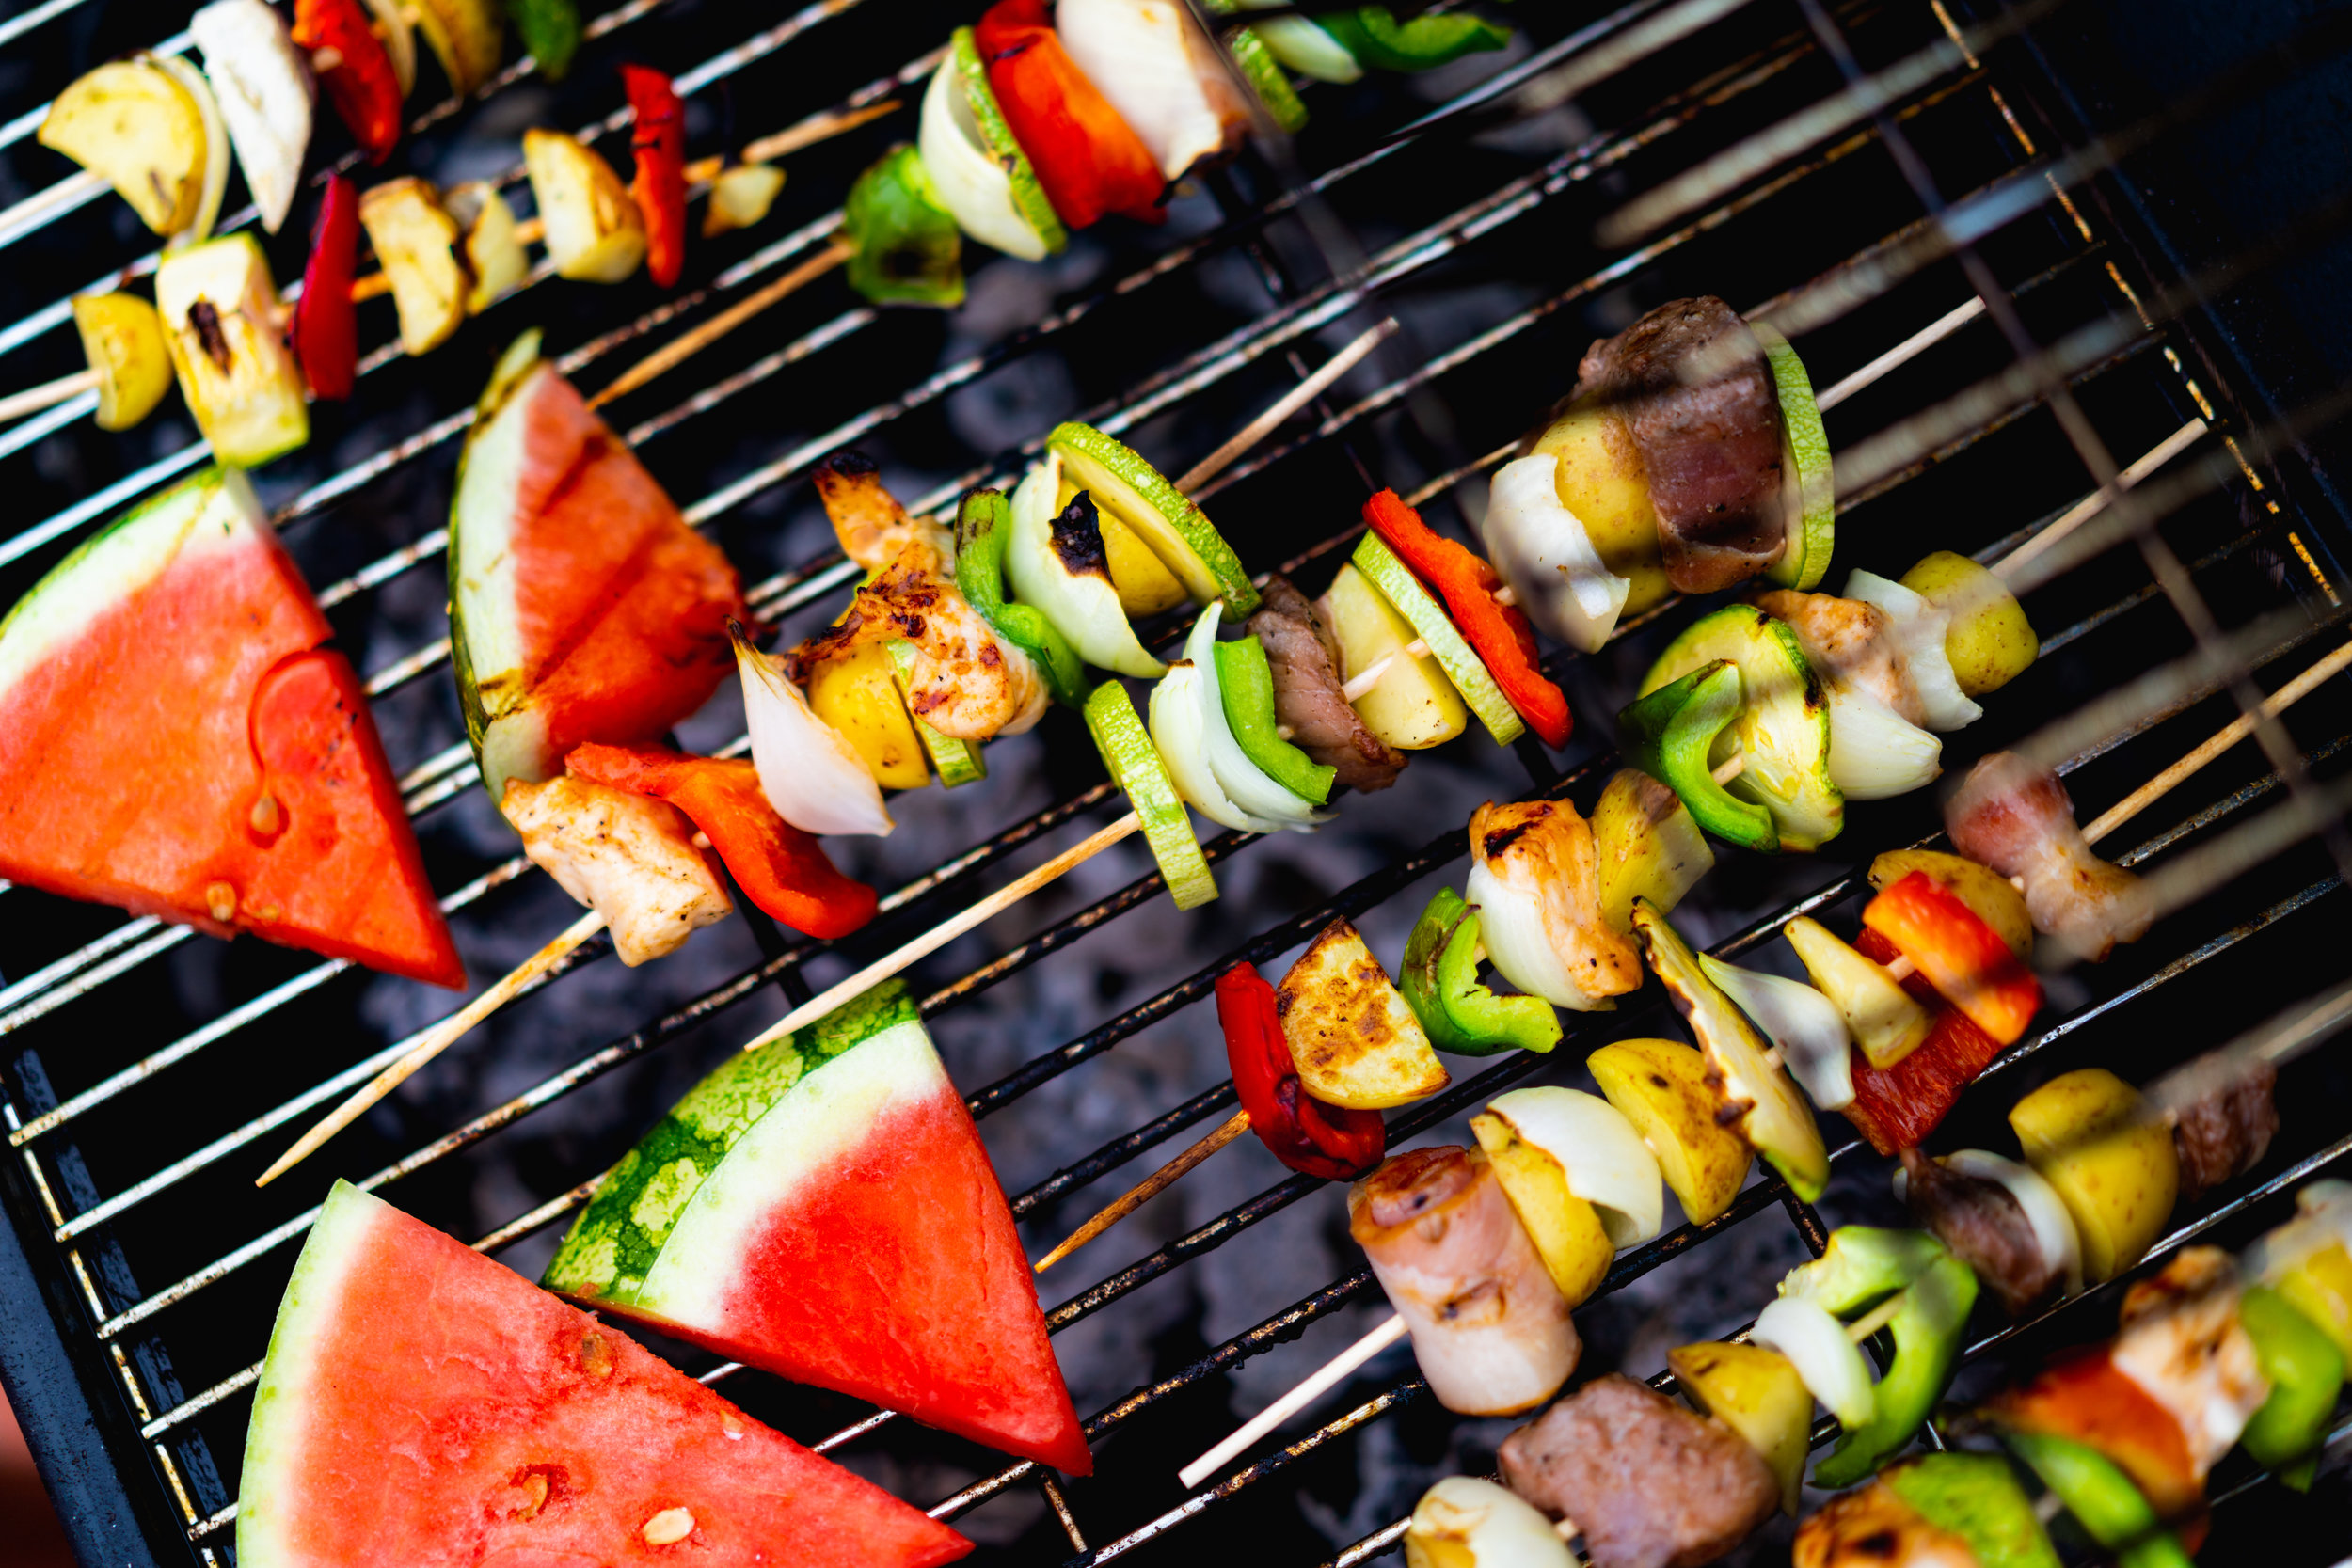 How much is your summer BBQ damaging the environment? - LettUs Grow has teamed up with scientists from across the UK to shine a spotlight on how consumer decisions on diet, as well as new technologies, could help reduce global warming.